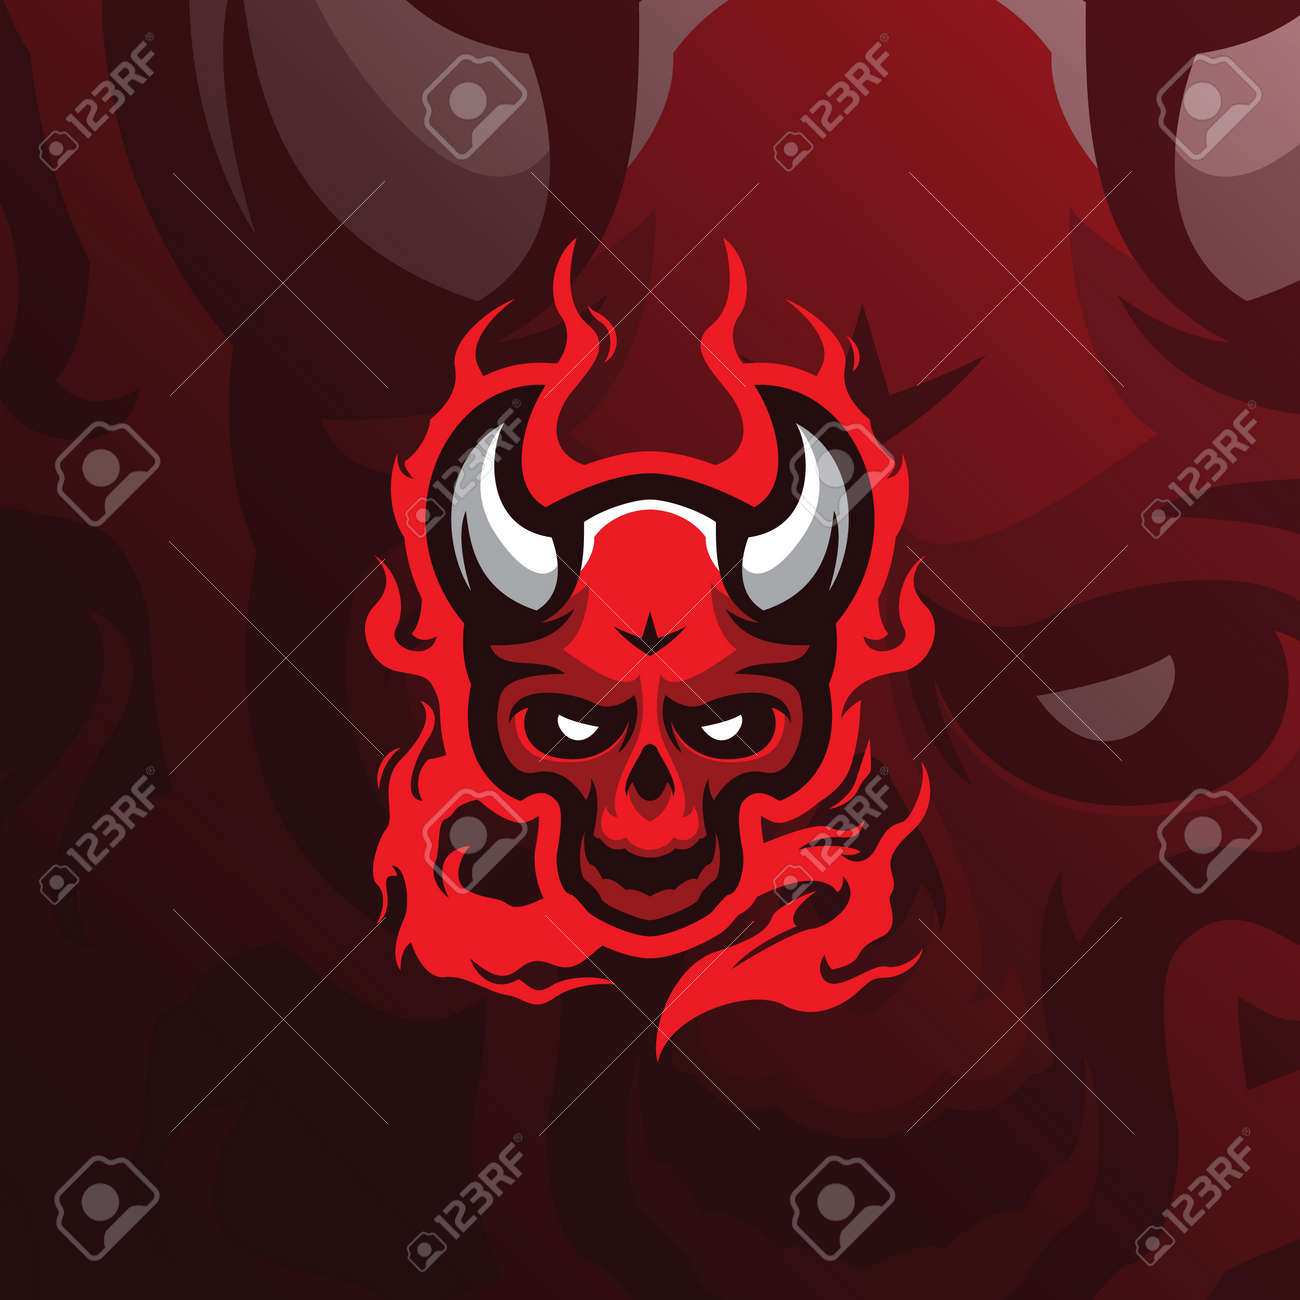 skull devil mascot logo design vector with modern illustration royalty free cliparts vectors and stock illustration image 119812674 skull devil mascot logo design vector with modern illustration